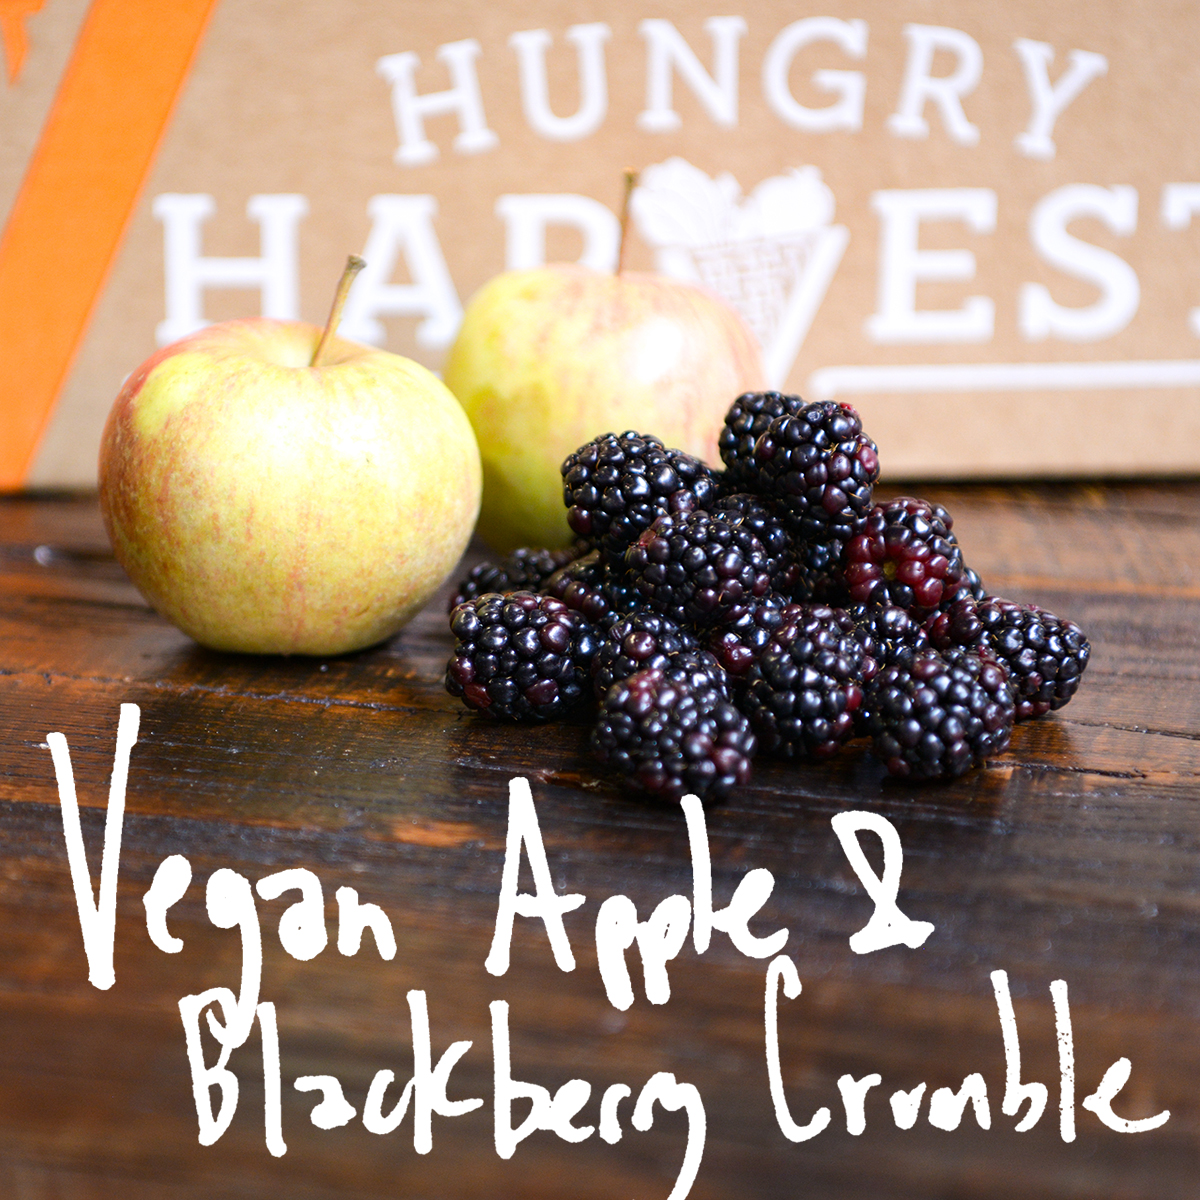 We love any recipe that is good for either breakfast or dessert. - Find the recipe at: Simple Vegan Blog